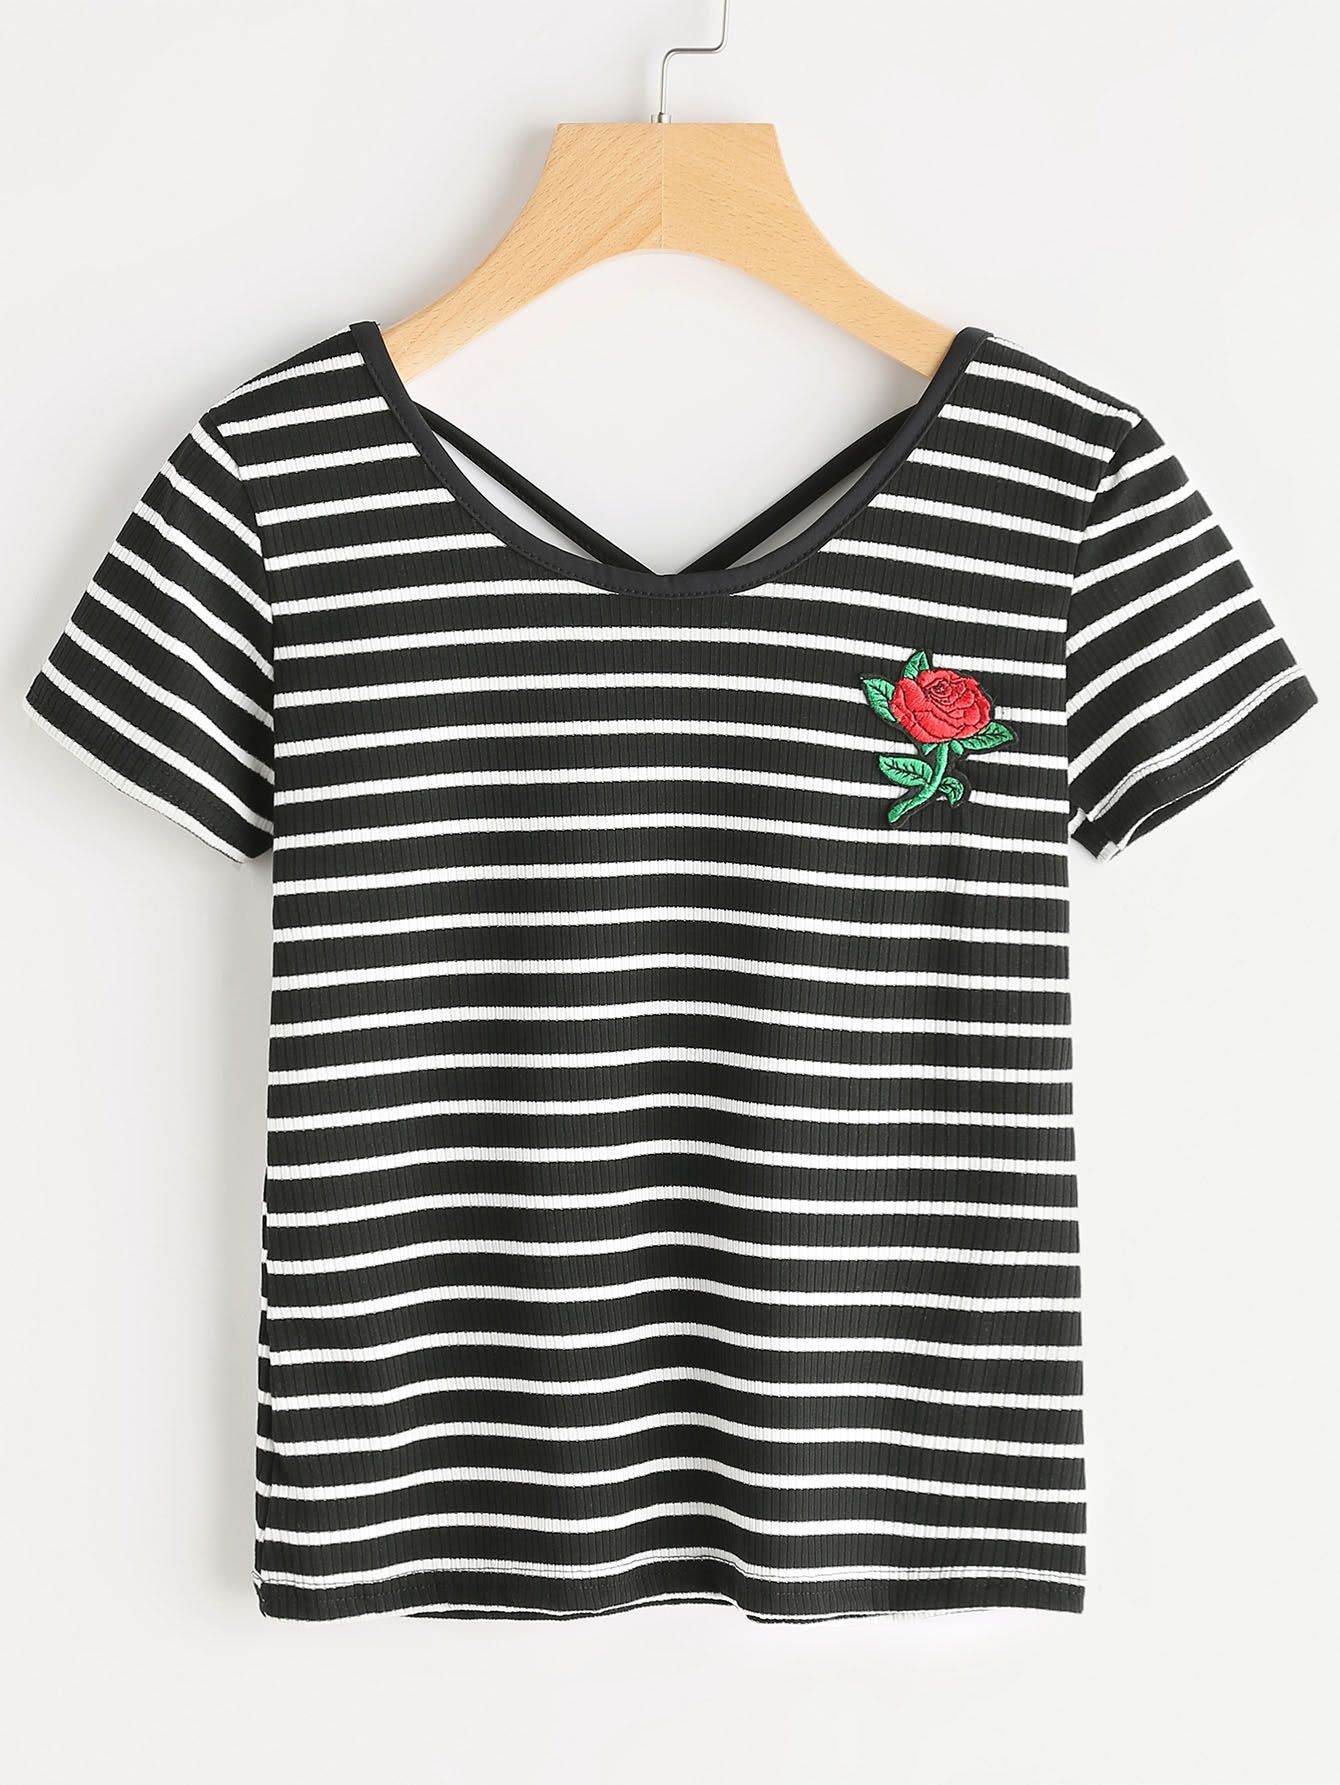 6ff3fbea356a8 Striped Rose Embroidered Criss Cross Back Tshirt | Fashion | Black ...